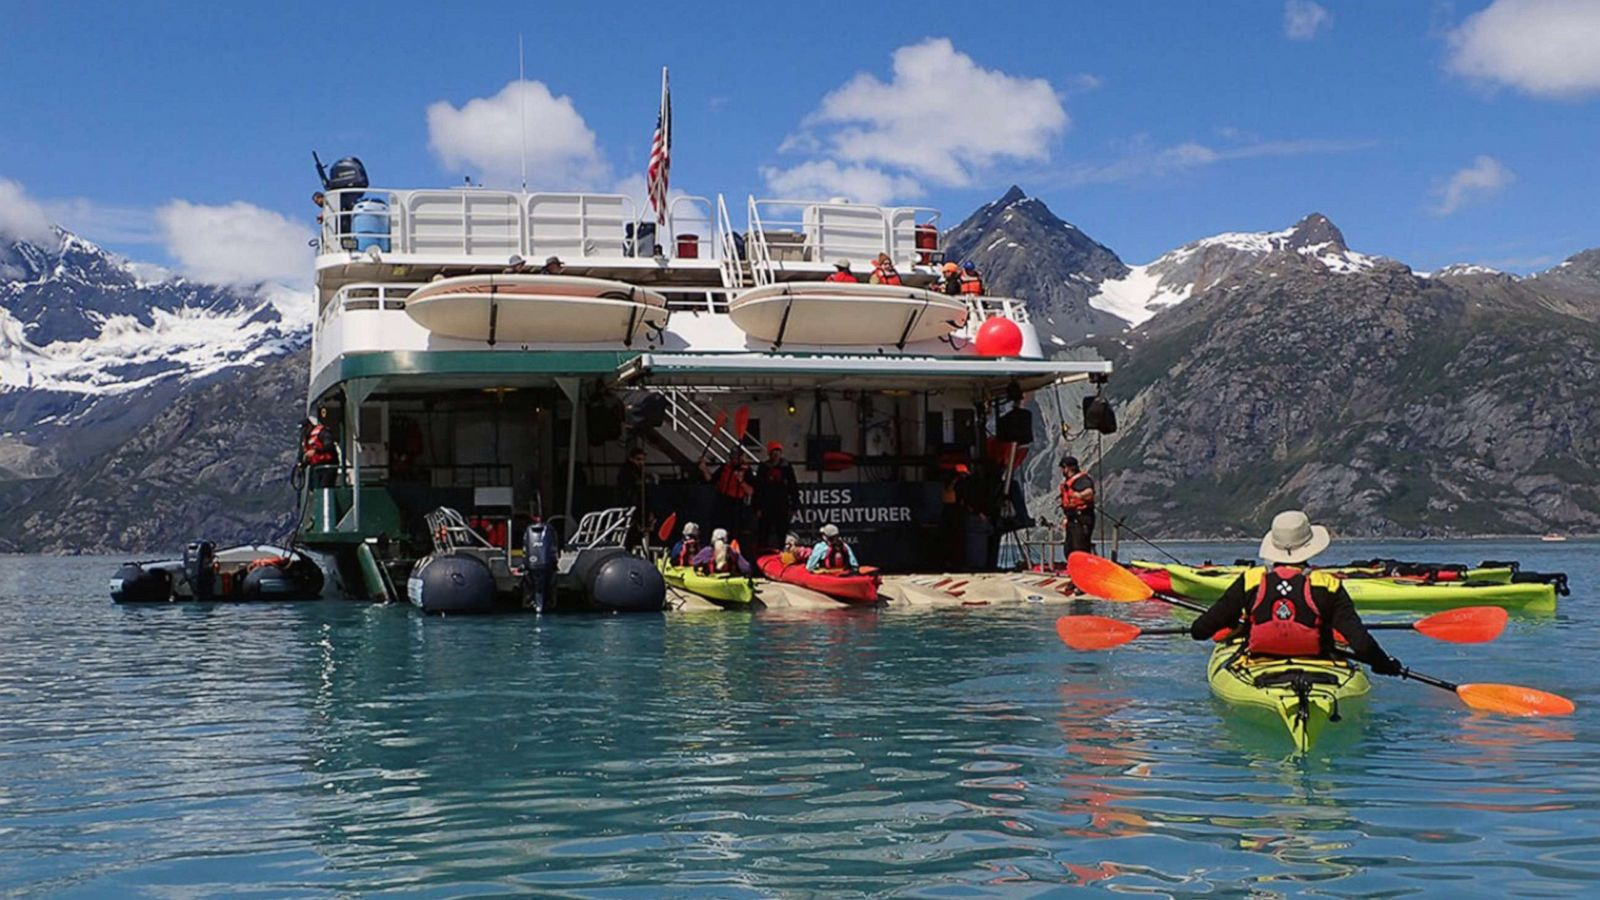 Alaska Cruise Cut Short After Passenger Tests Positive For Covid 19 Abc News